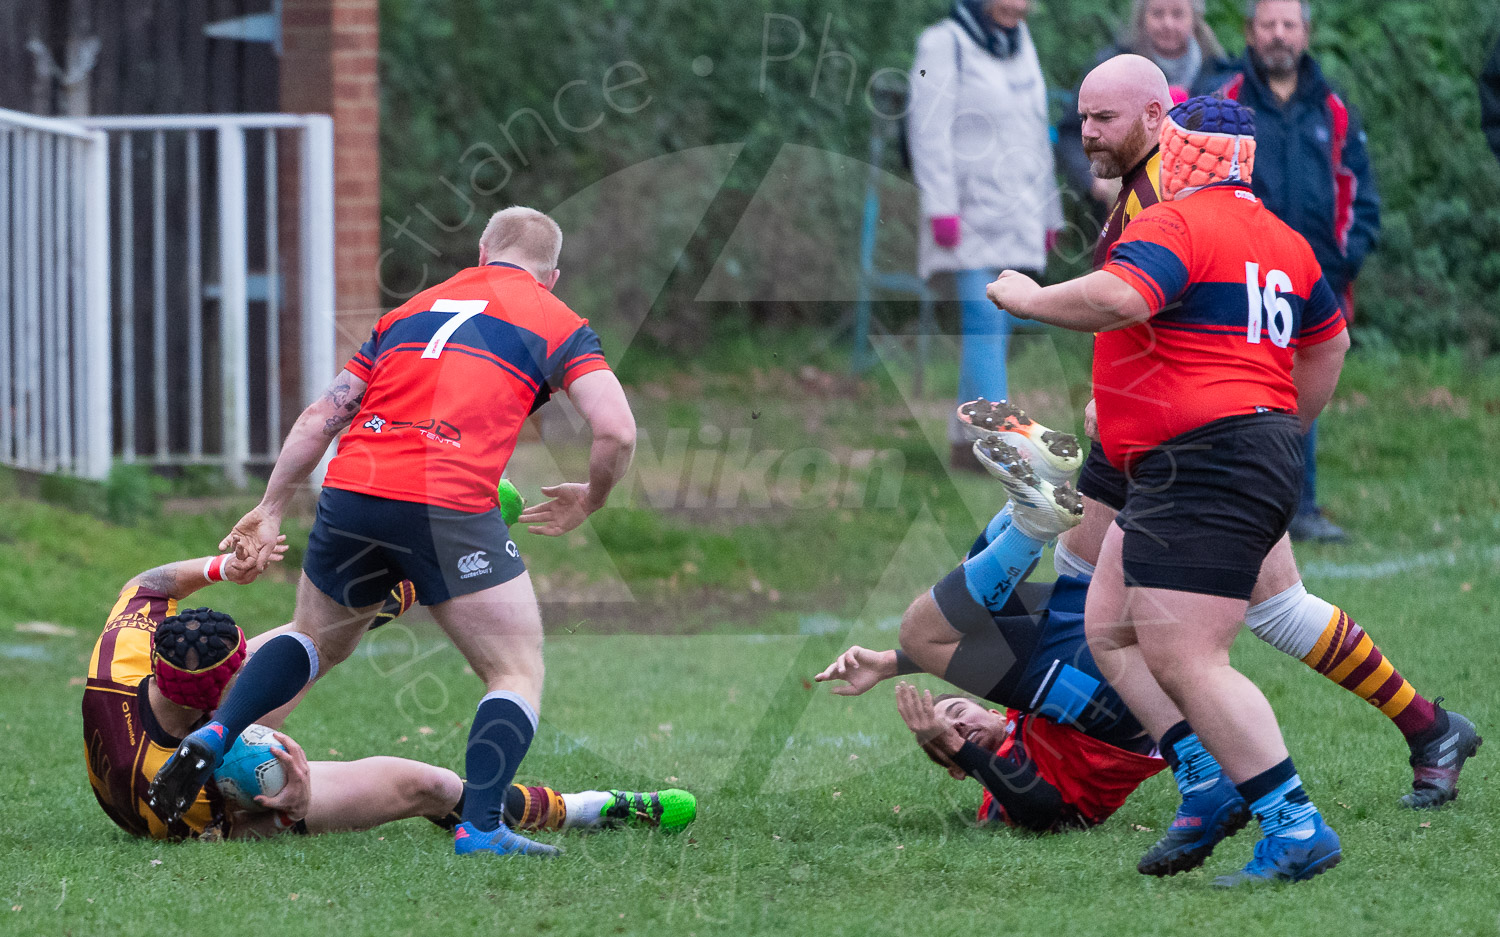 20181027 Amp Extras vs St Neots 2nd XV #2311